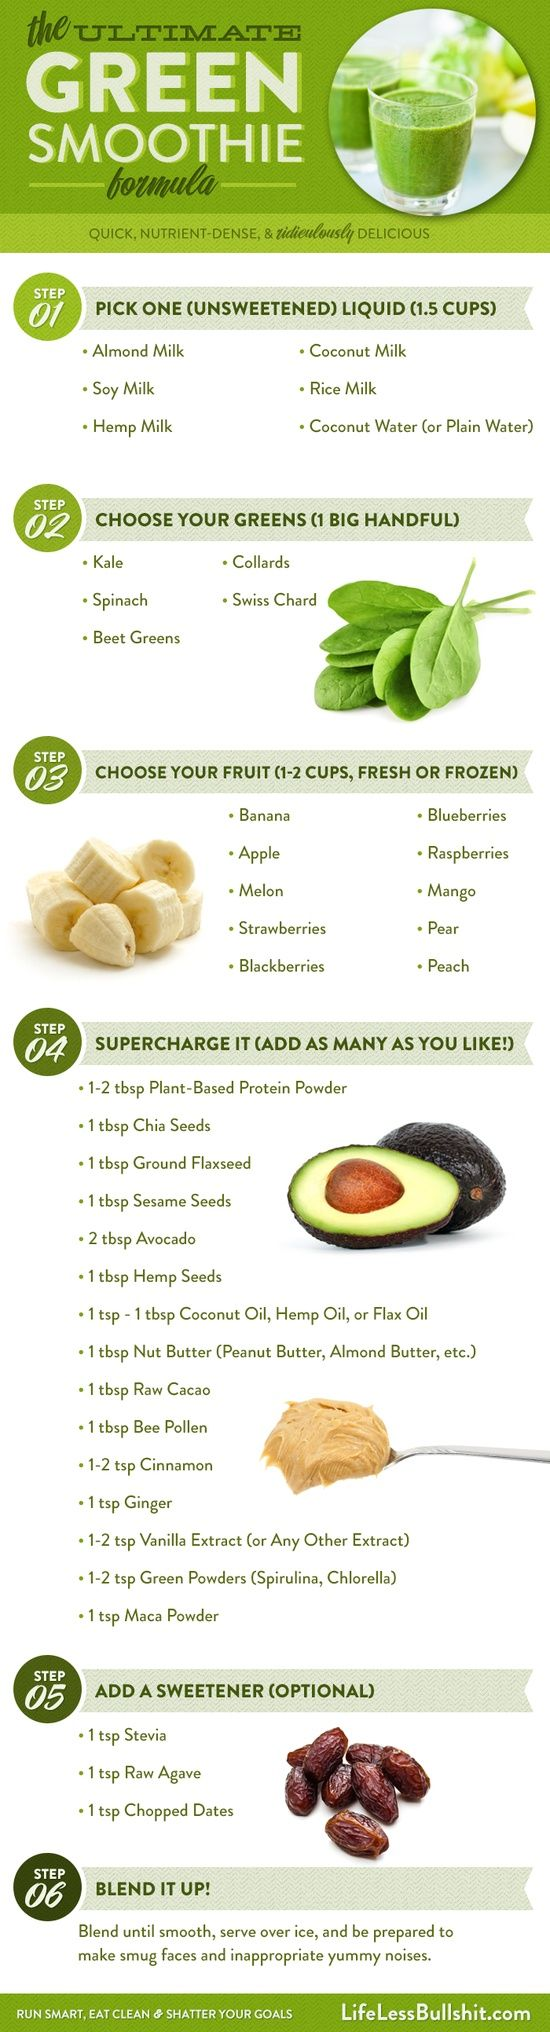 The-Ultimate-Green-Smoothie-Formula-infographic-plaza